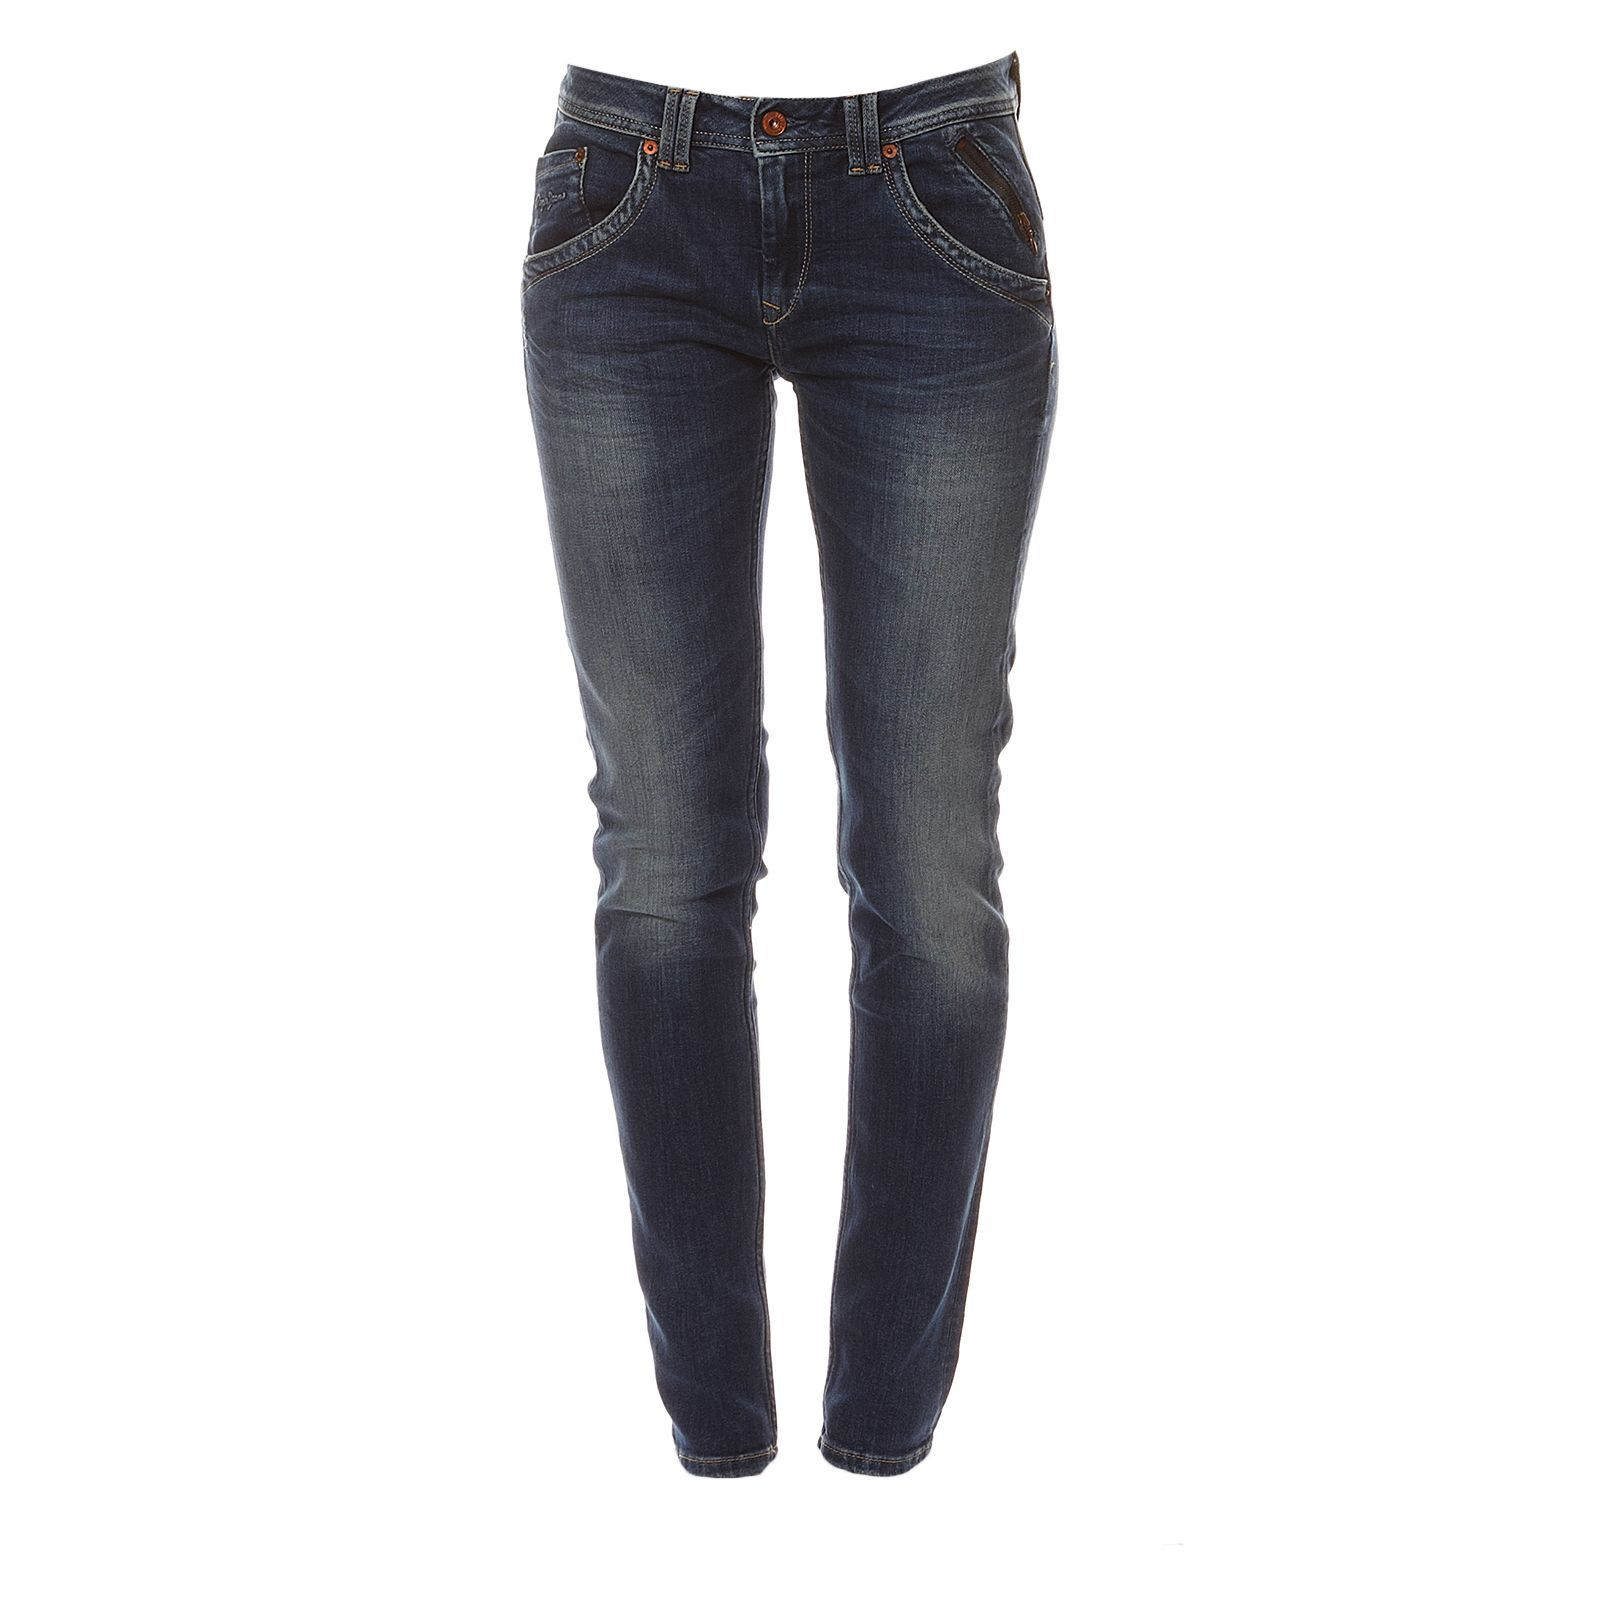 Pepe Jeans London Mercure - Jean slim - denim bleu